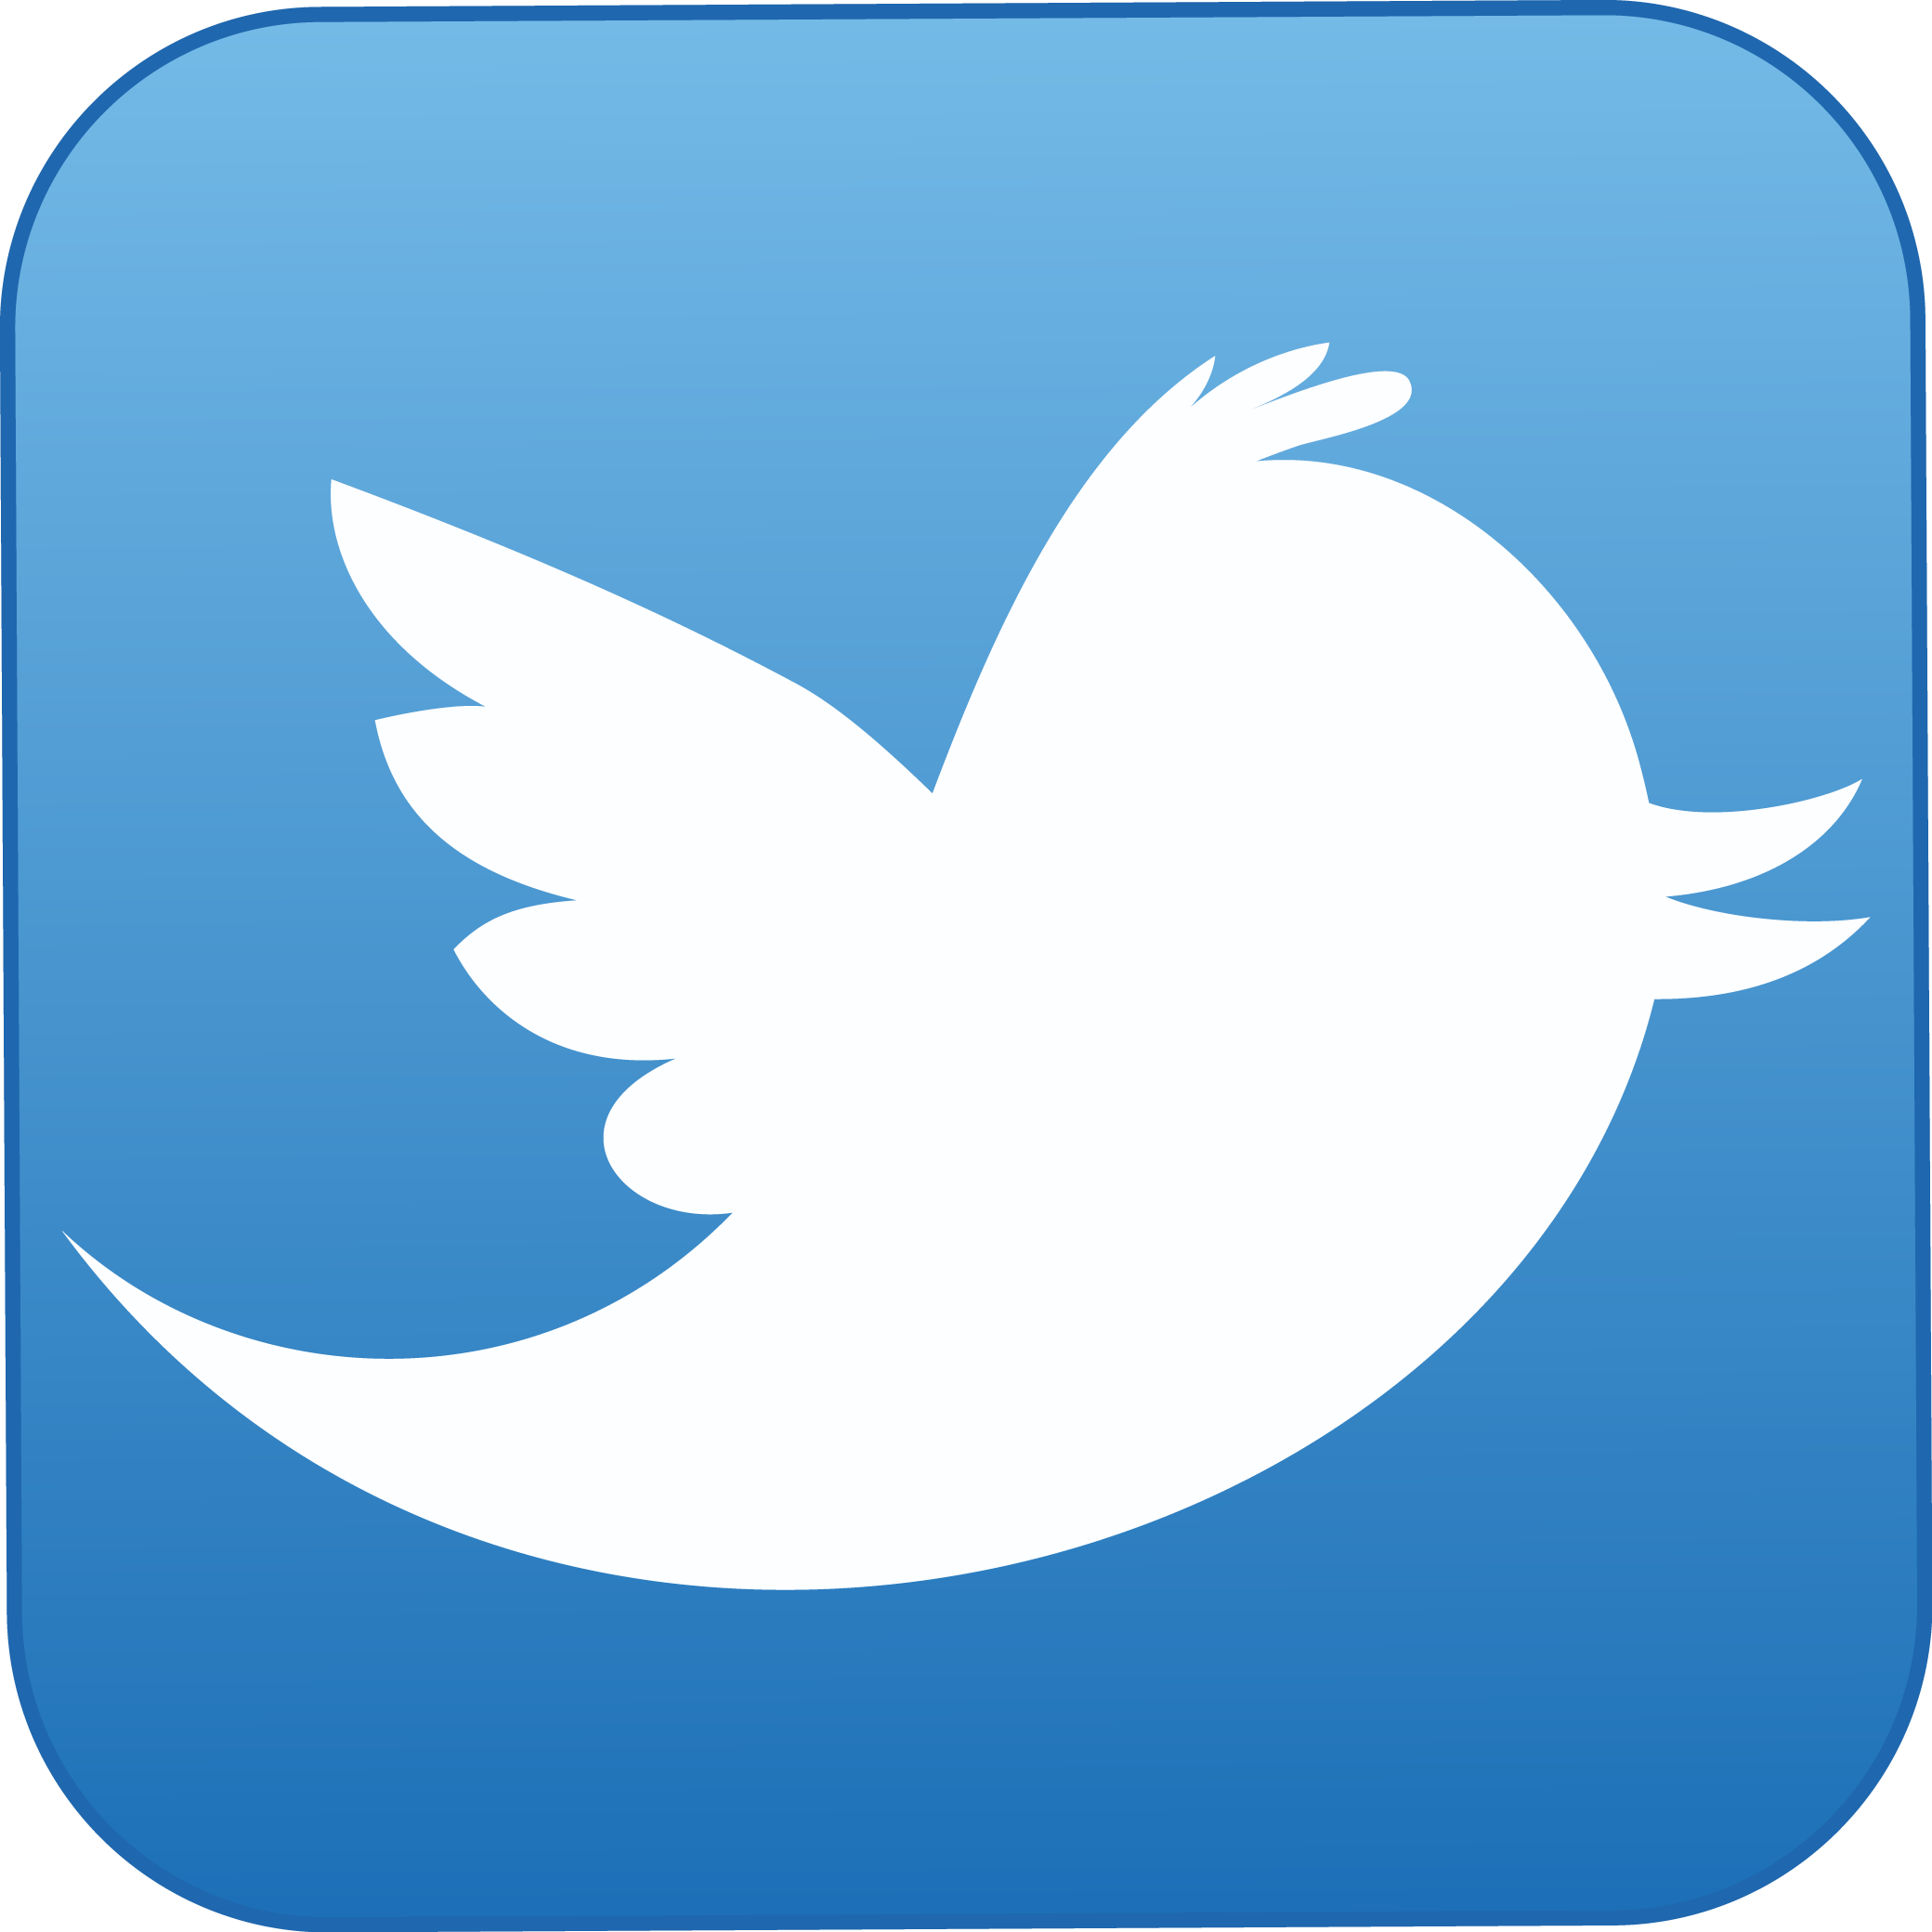 Twitter Logo Png & Free Twitter Logo.png Transparent Images #27911 - PNGio